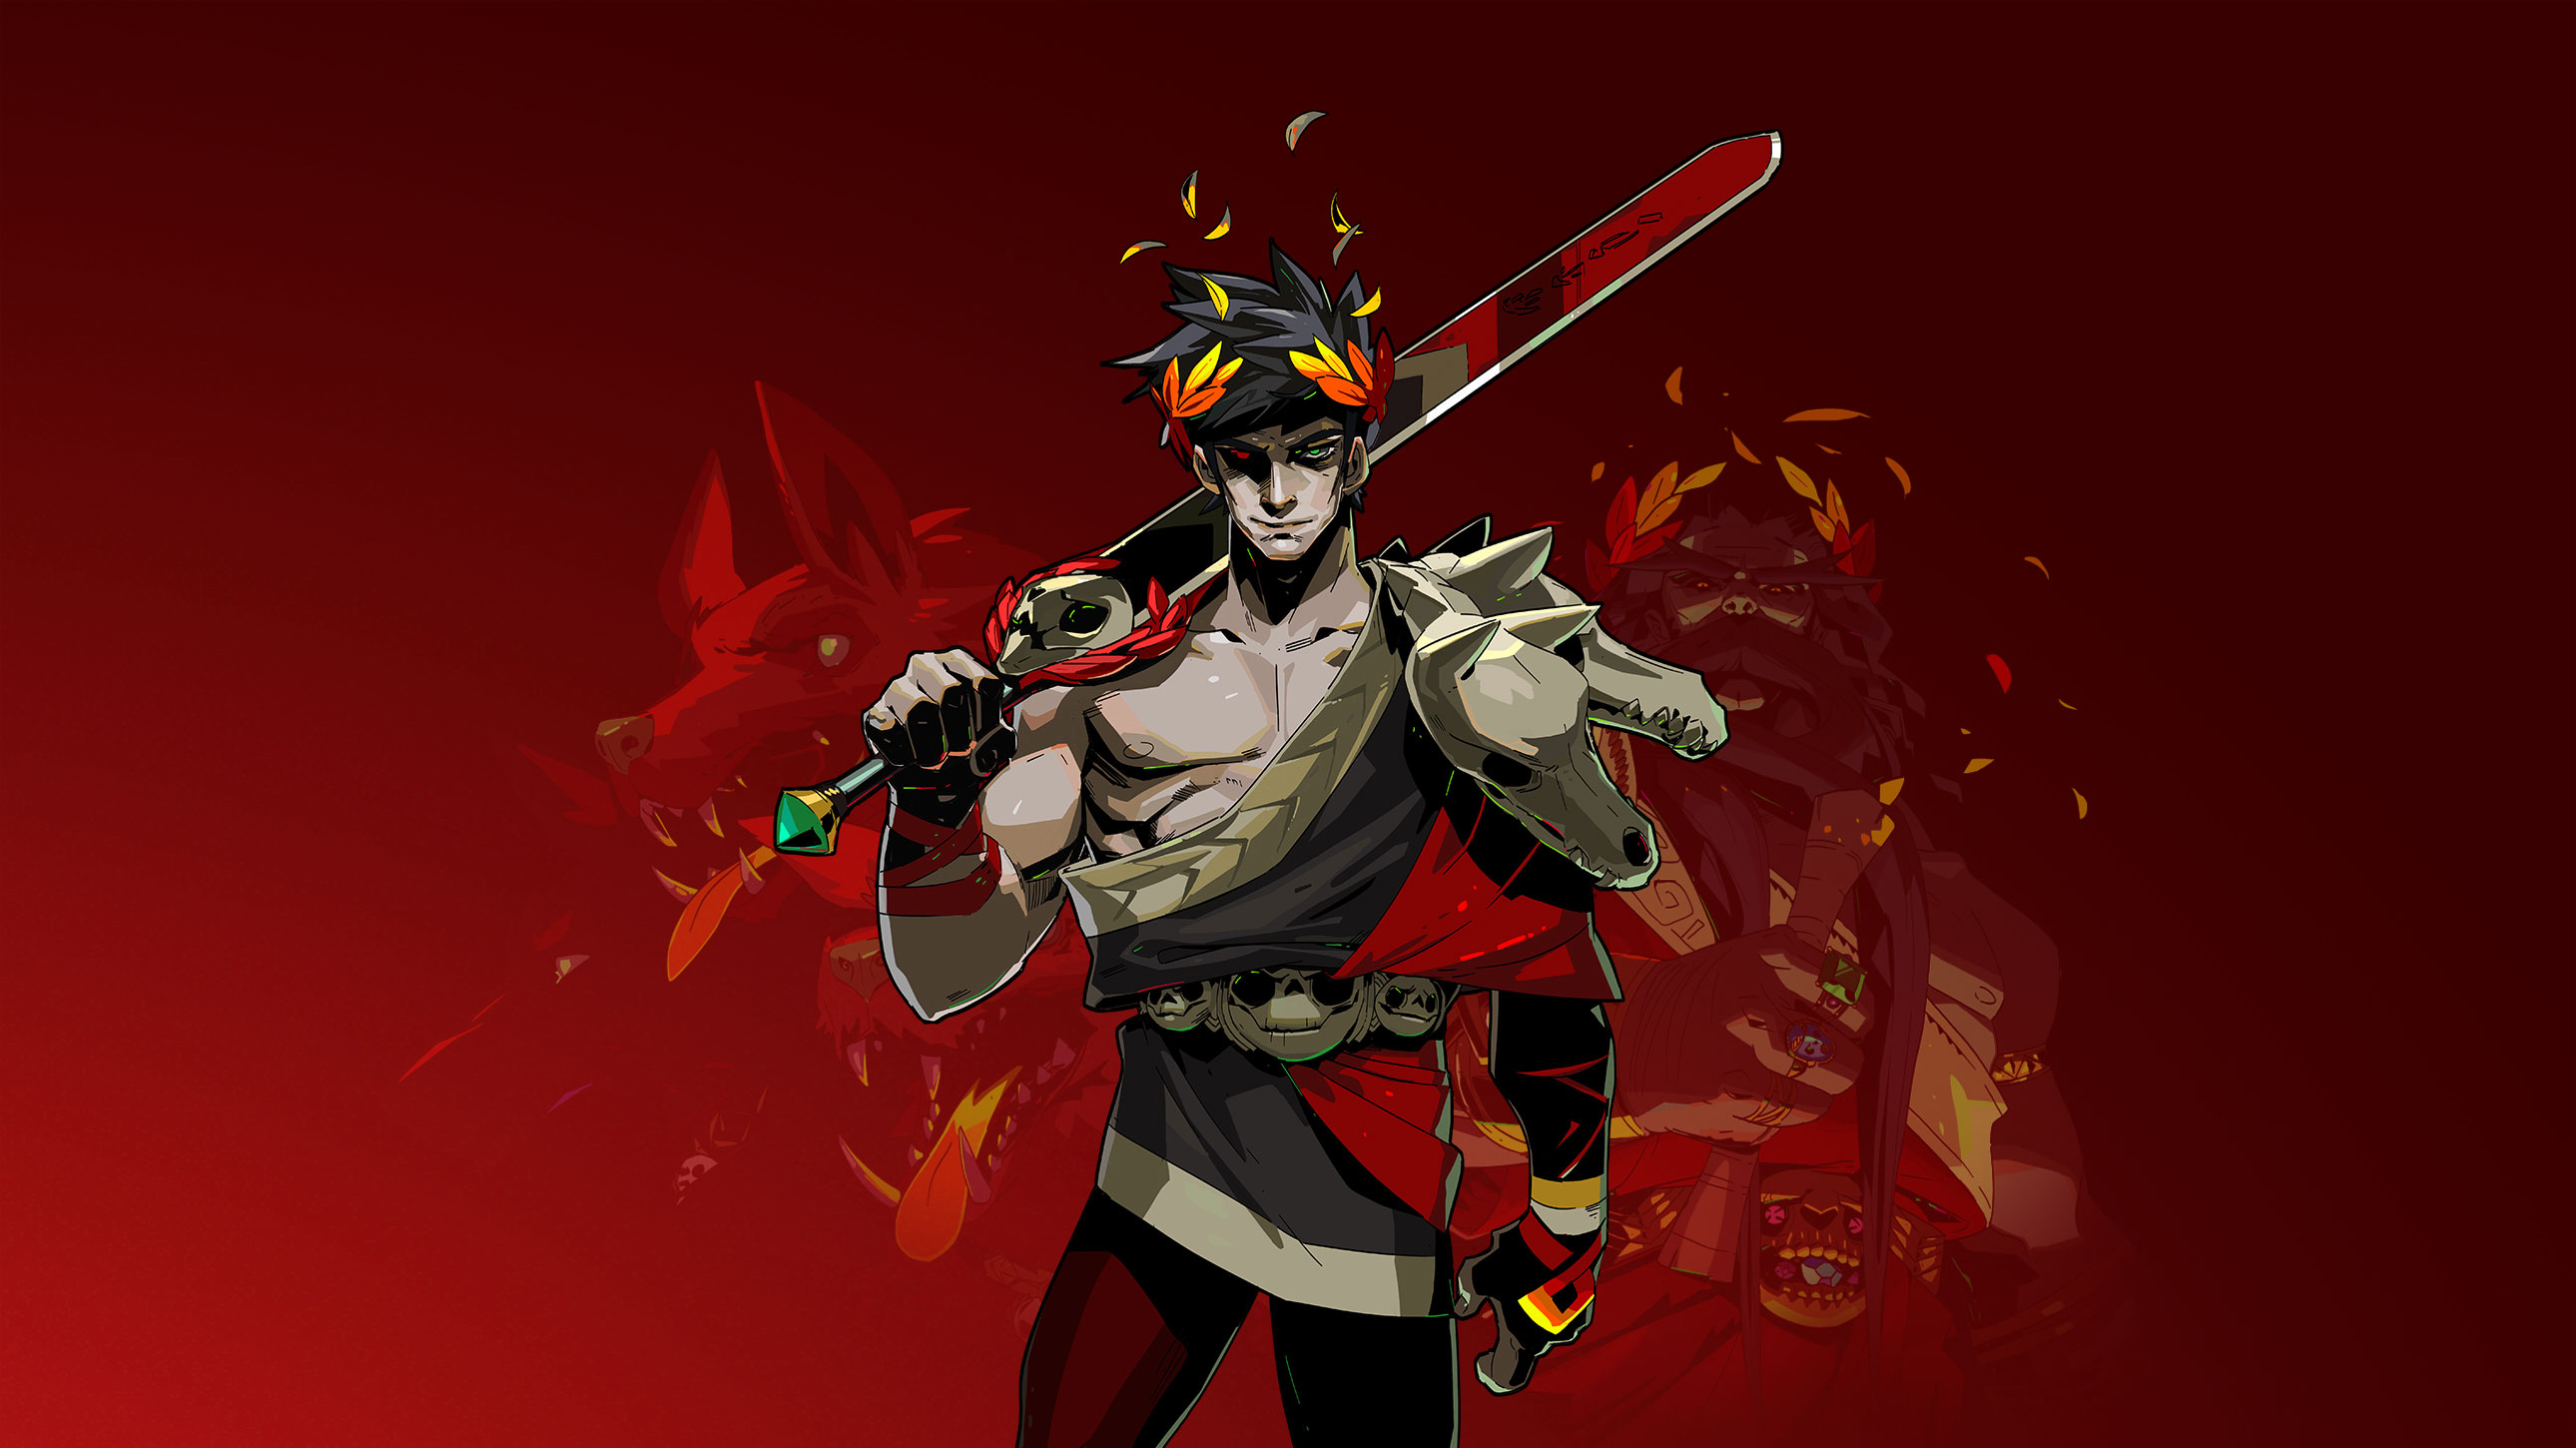 Preview Hades - Zagreus